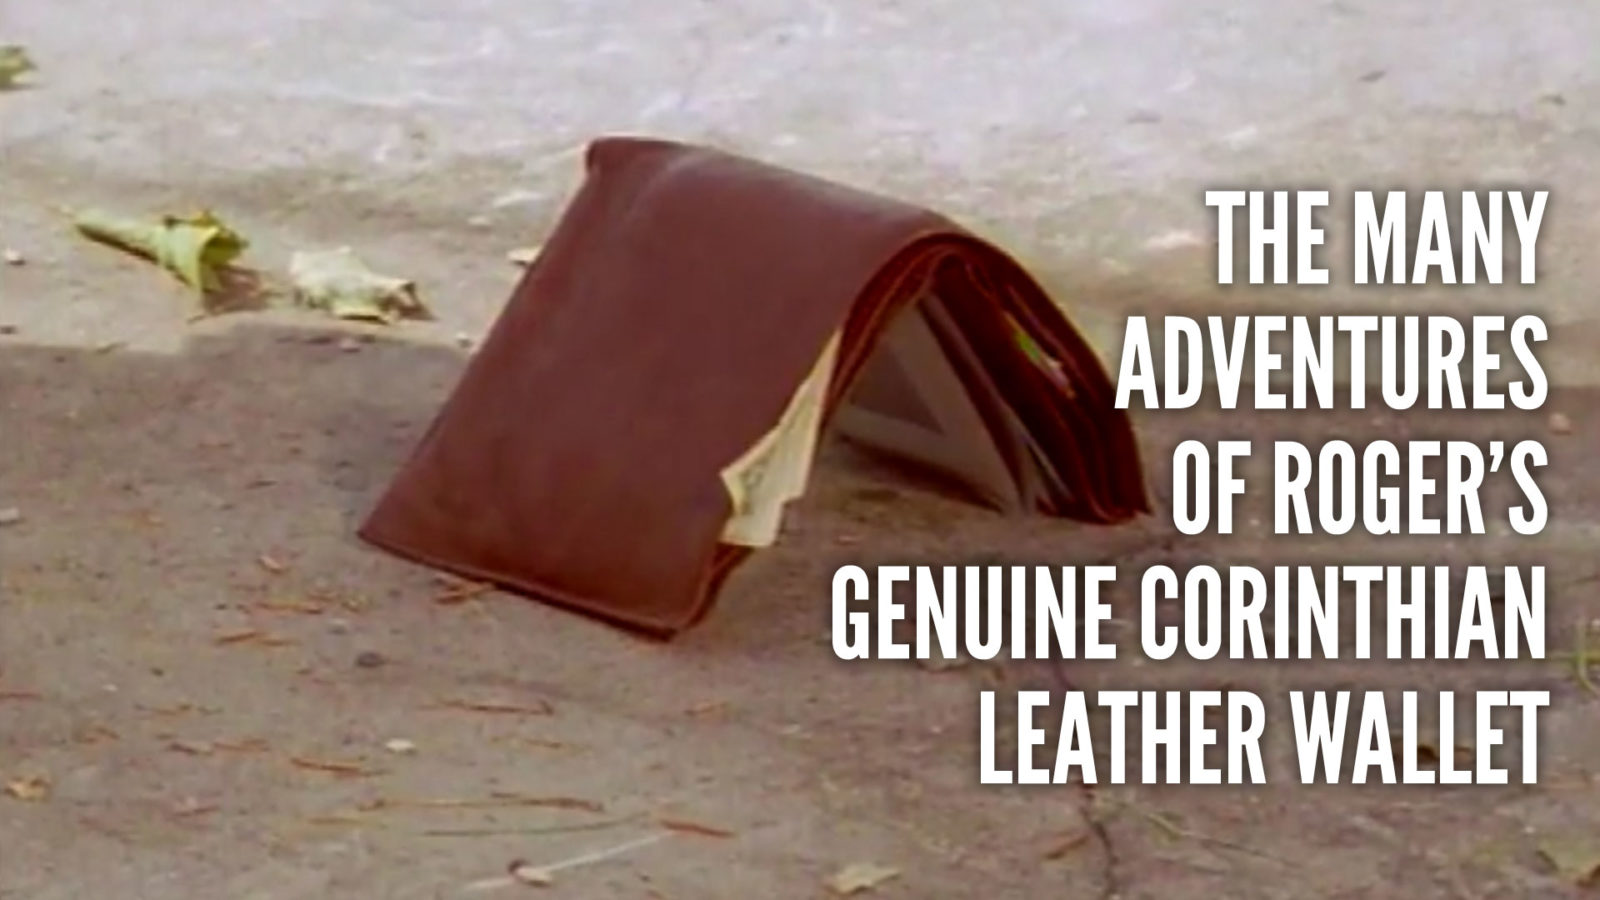 The Many Adventures of Roger's Genuine Corinthian Leather Wallet